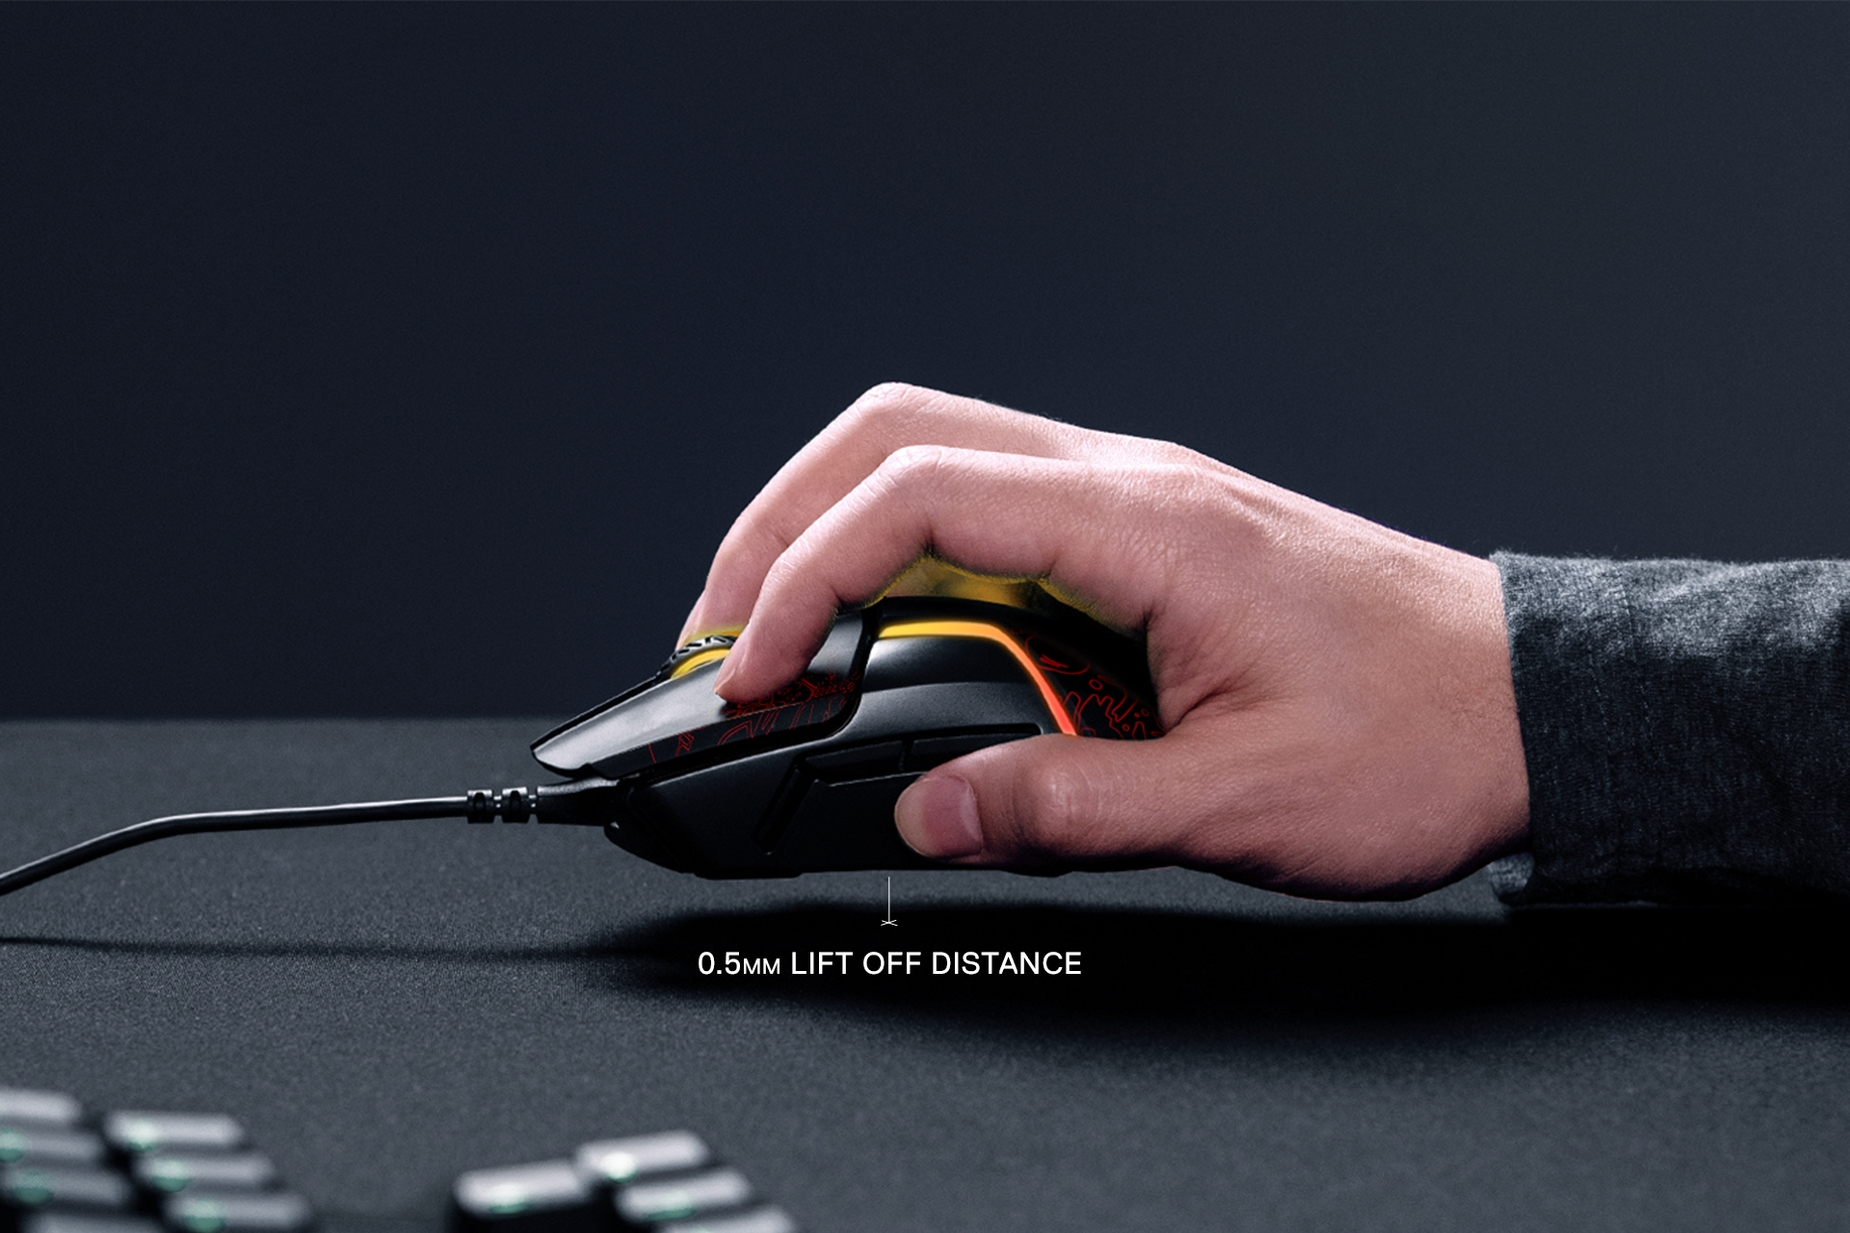 Hand holding Rival 600 Dota 2 Edition above table showing 0.5mm lift off distance